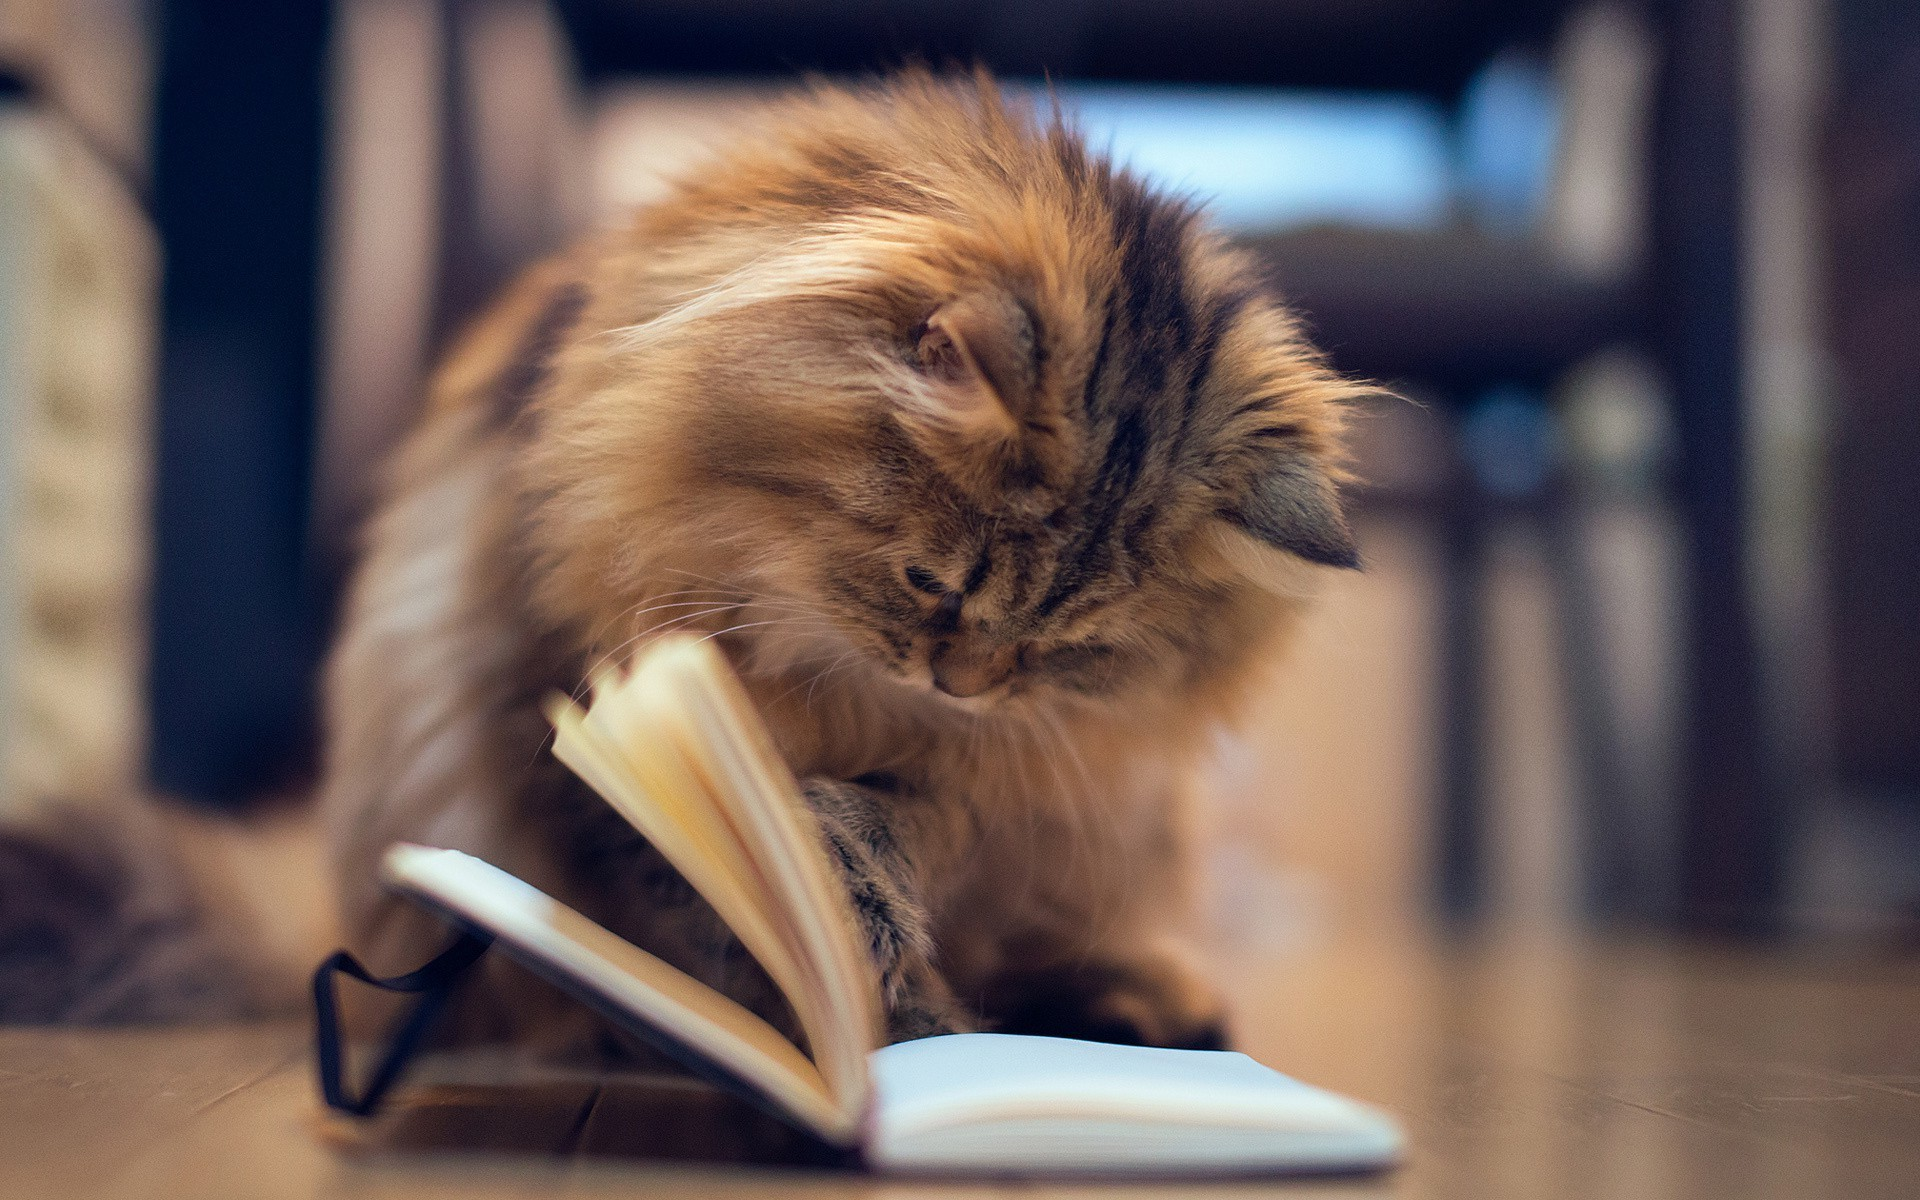 Fluffy cat enjoys reading the book